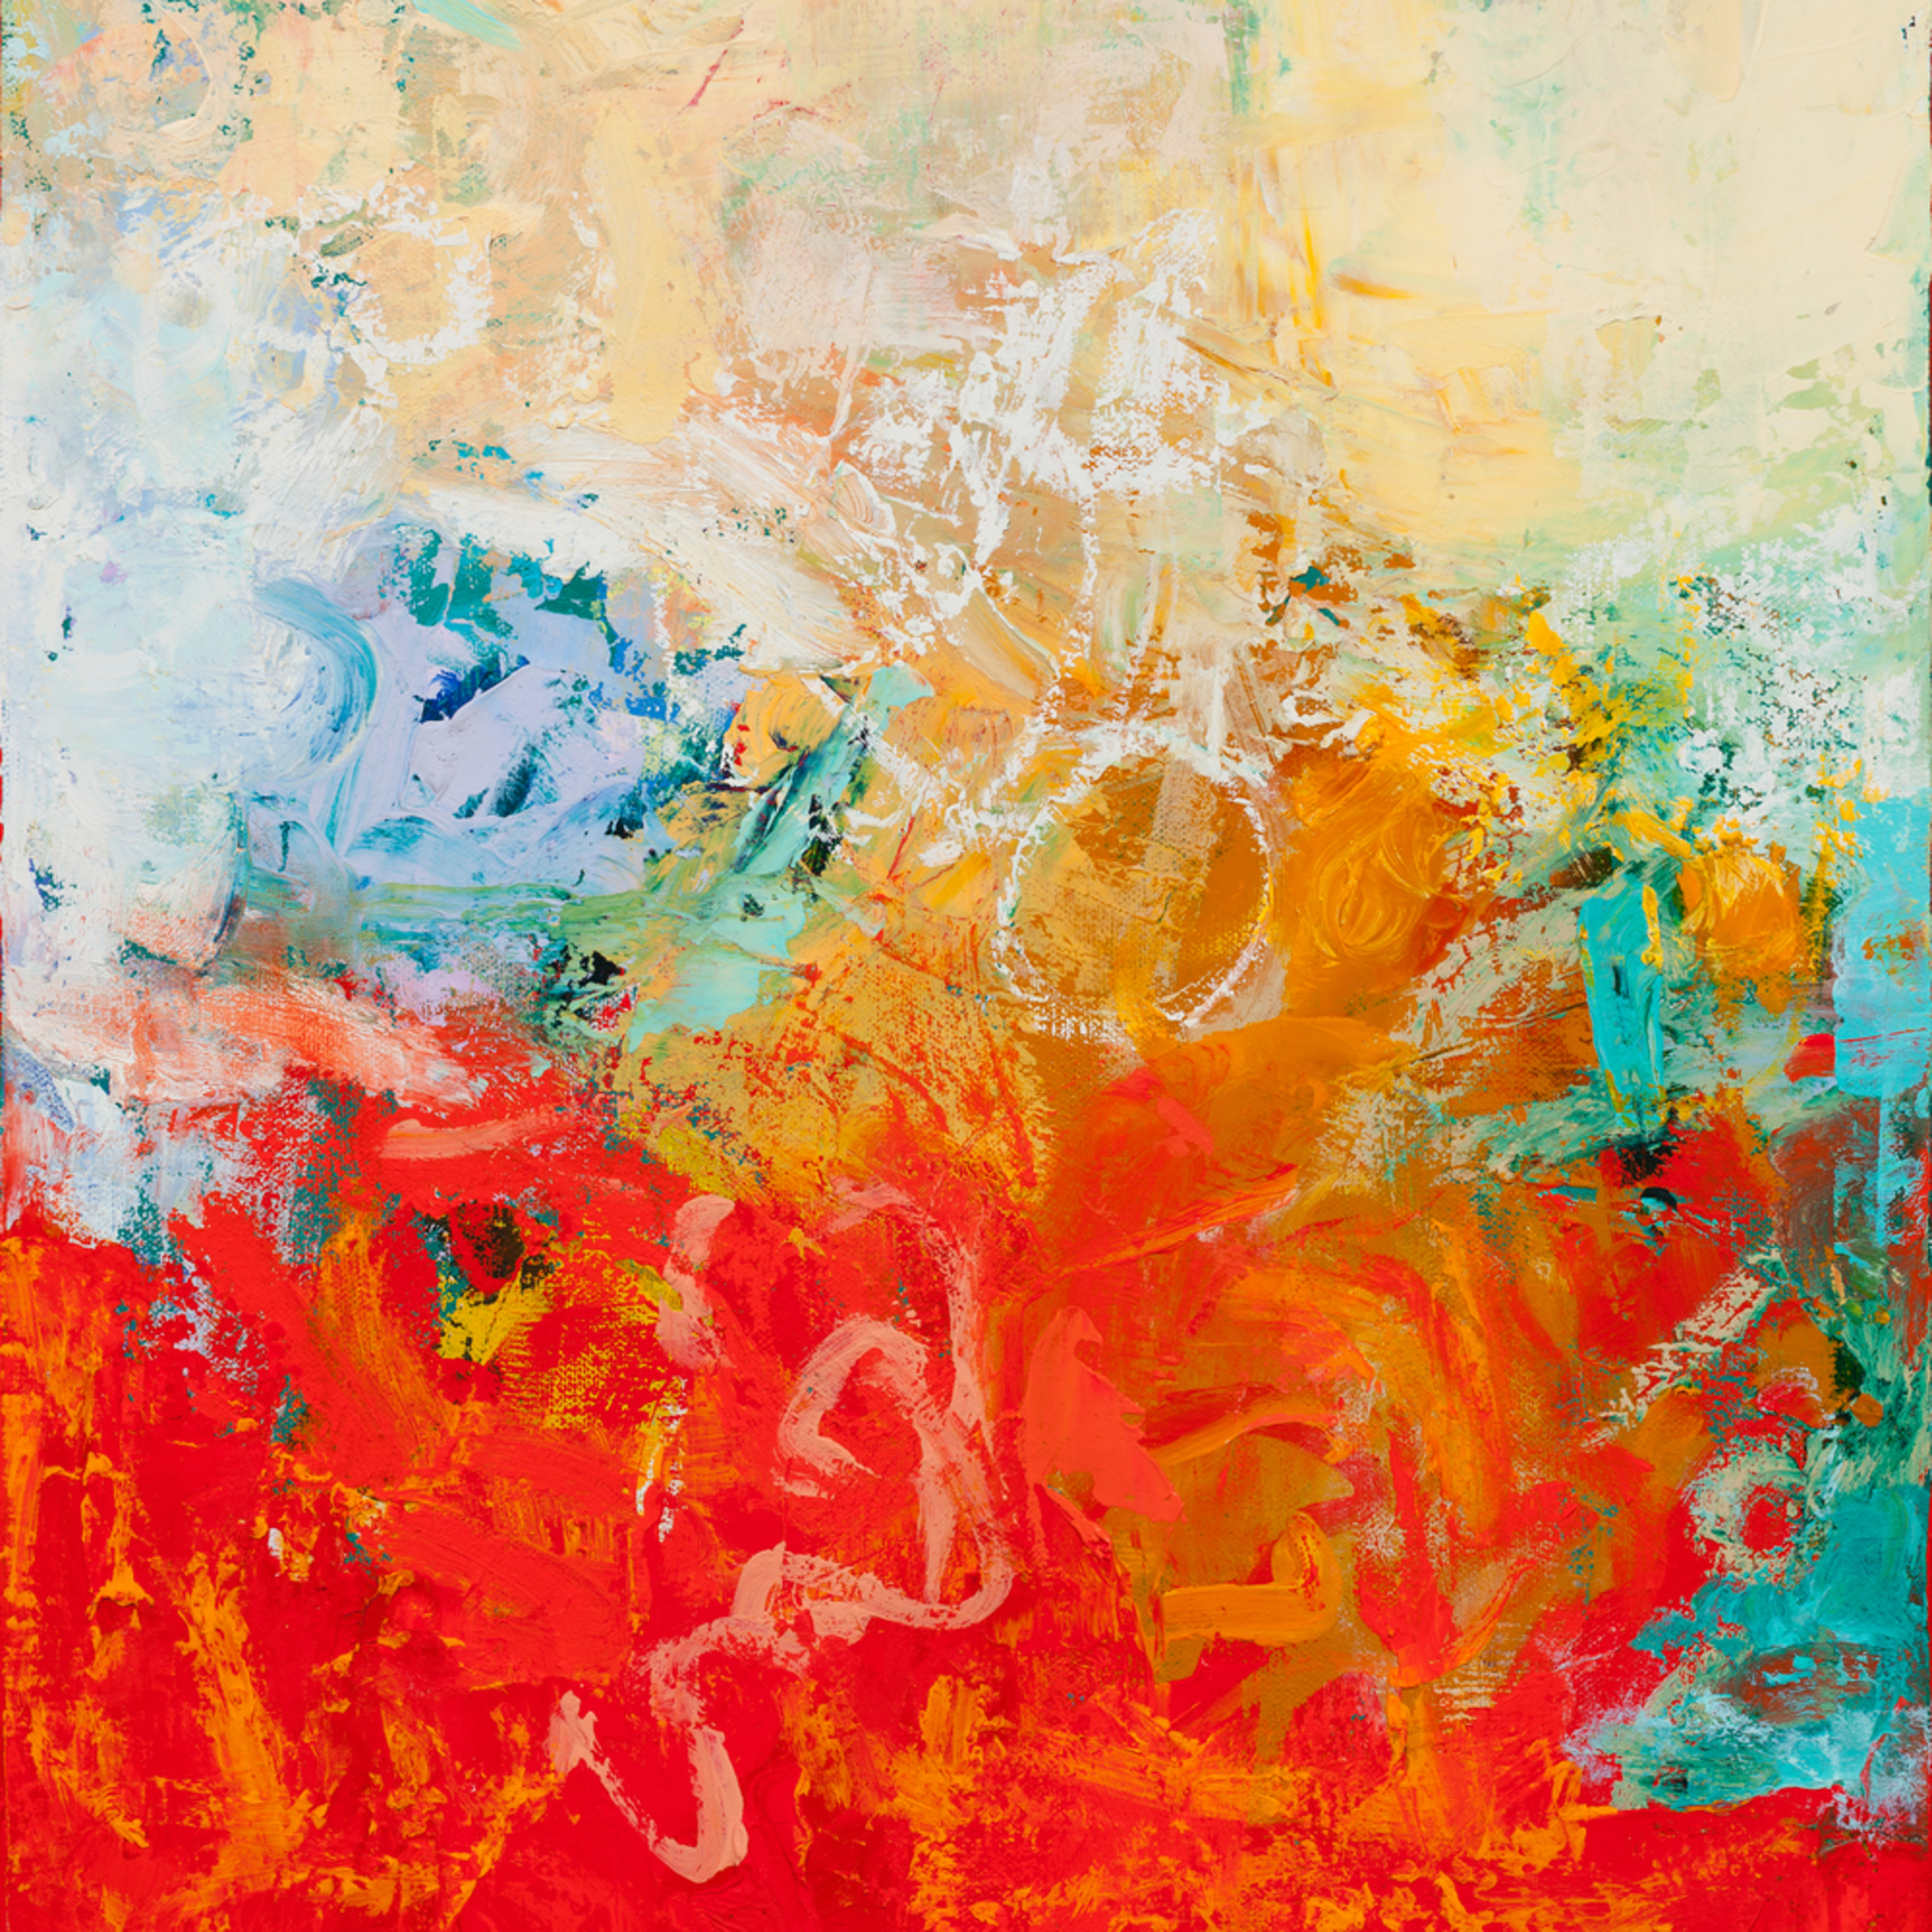 Tracy lynn pristas  prints on demand  abstract art rustle of the ancient i ojty3z